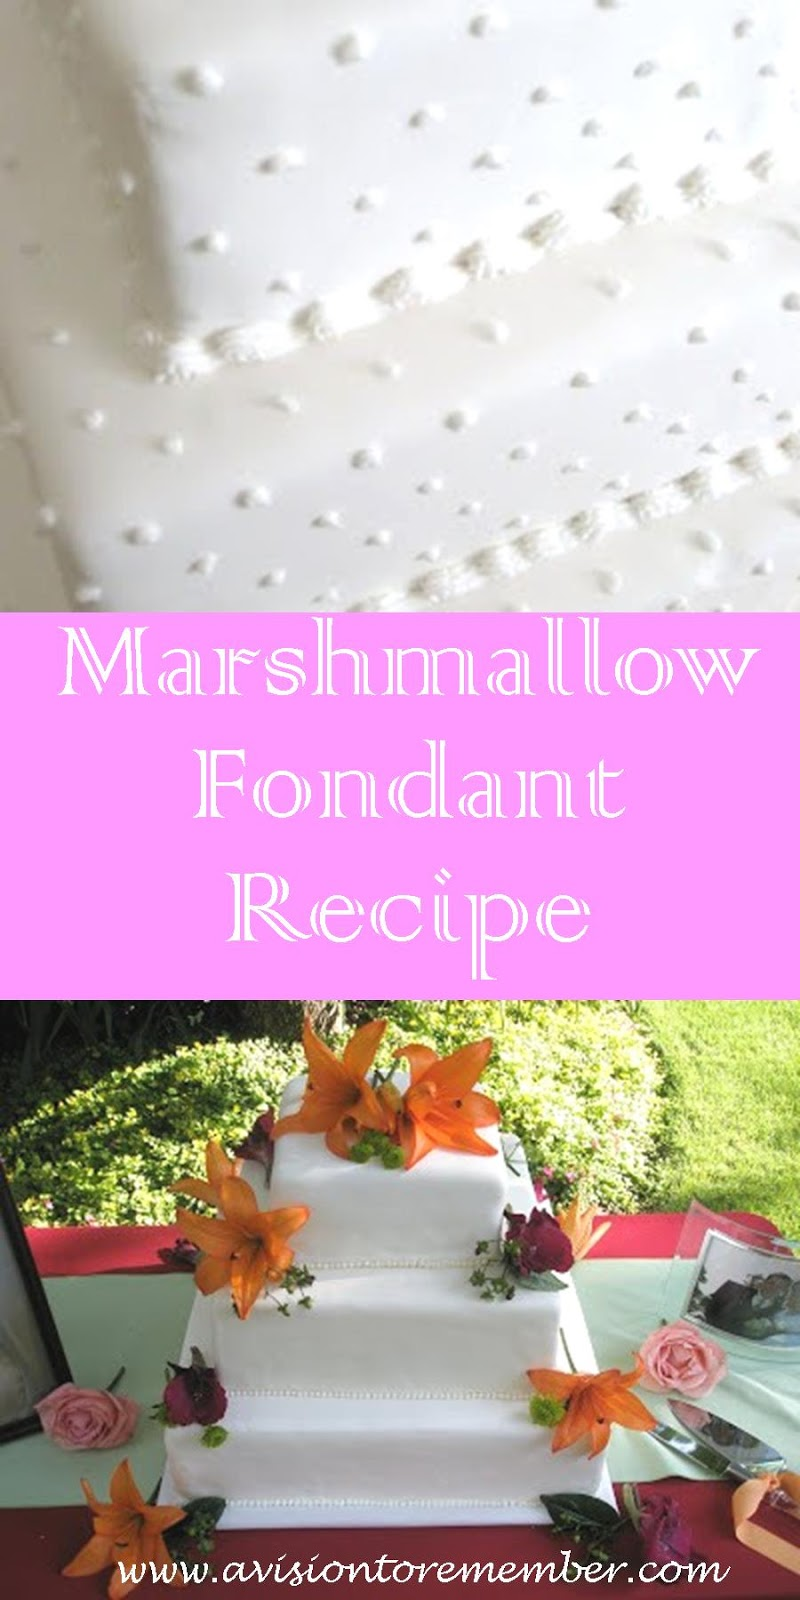 Marshmallow fondant recipe for wedding and birthday cakes